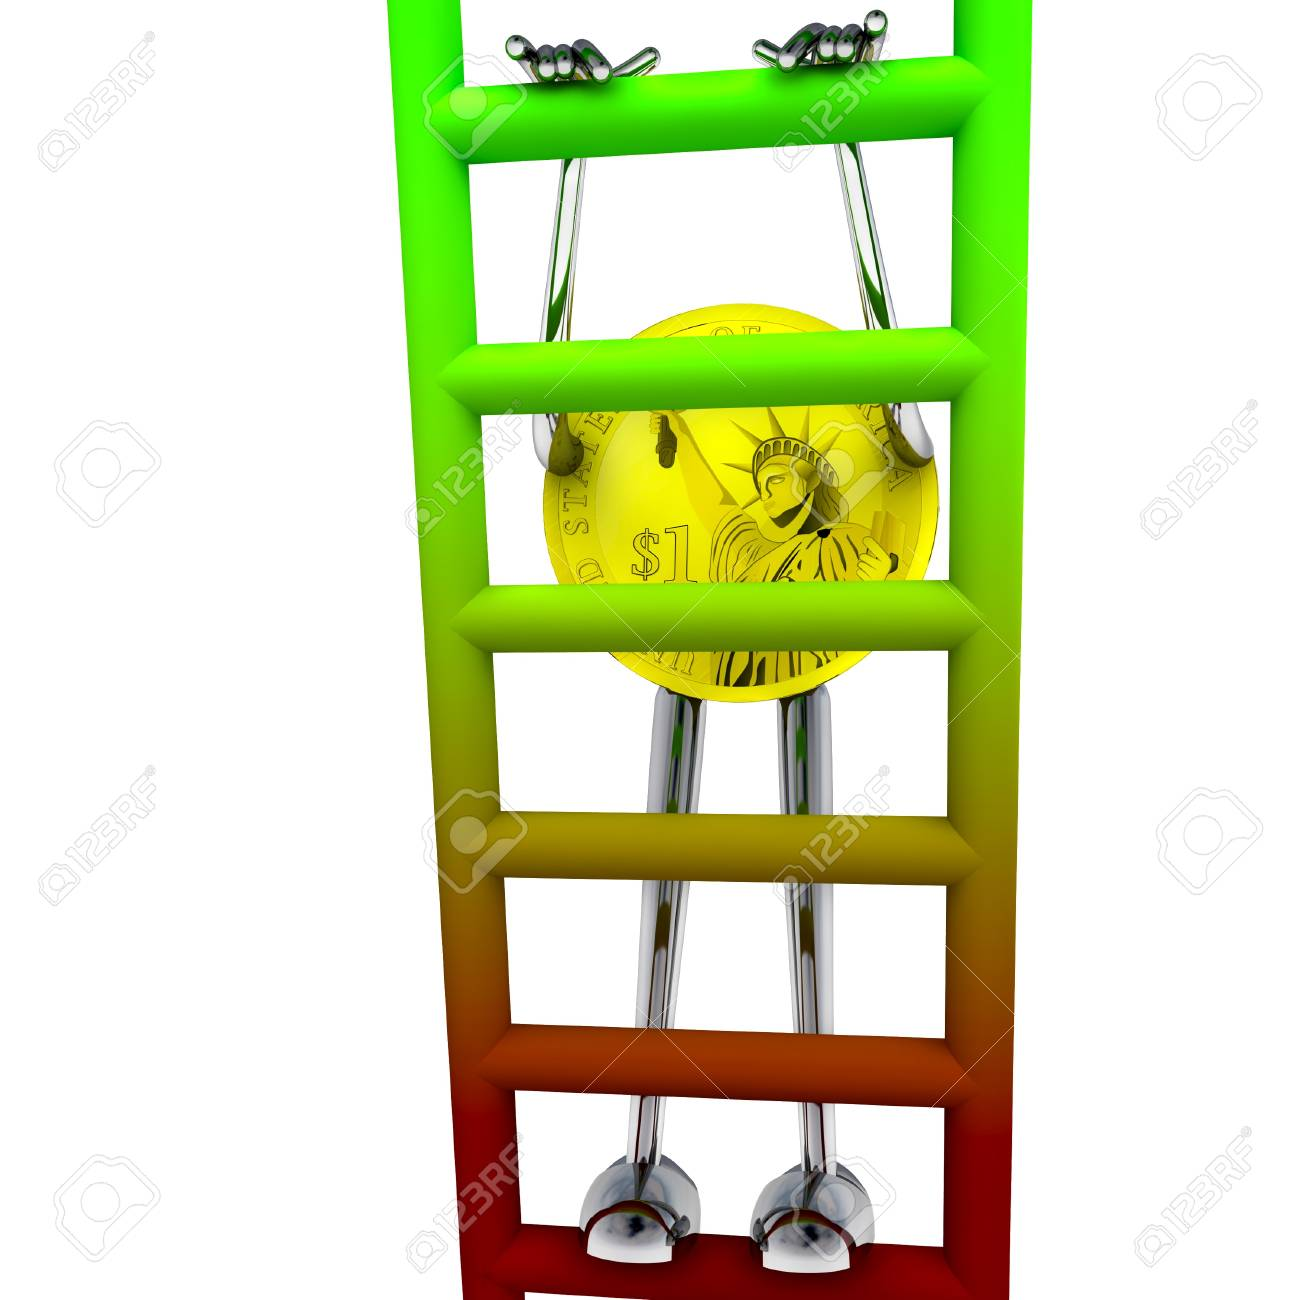 dollar coin robot climbs up on red green ladder rendering illustration Stock Illustration - 15708762